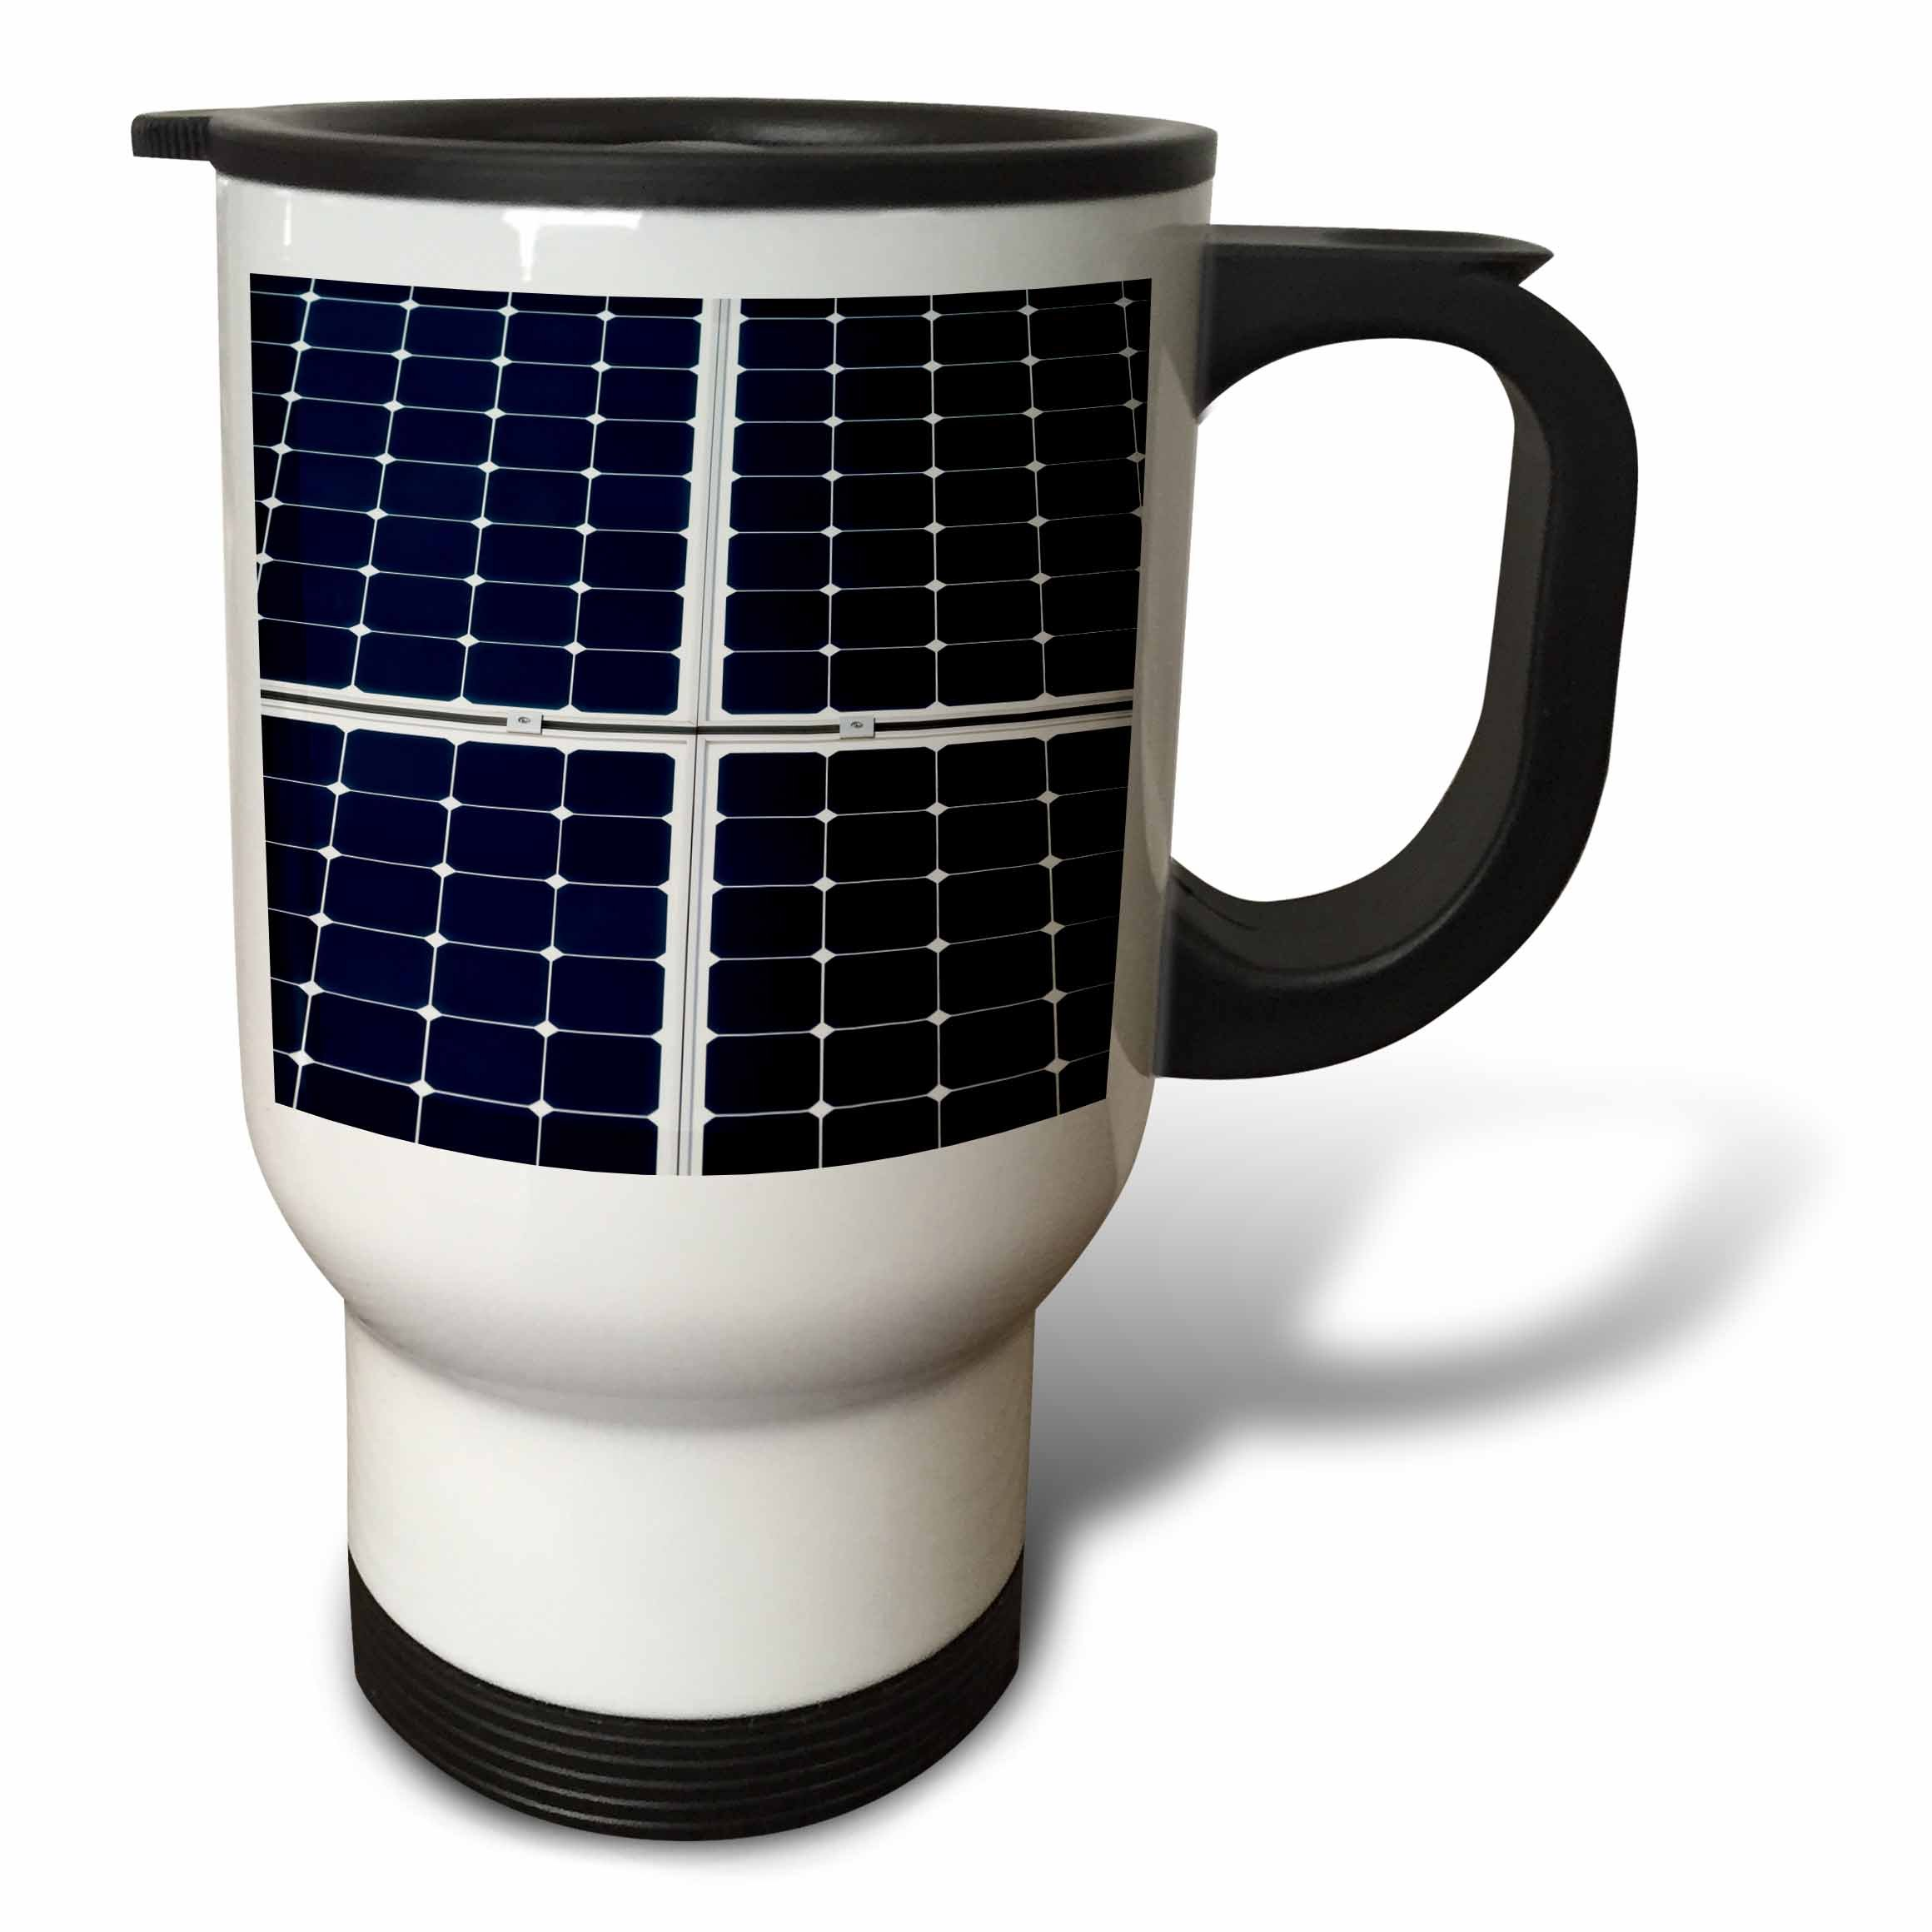 3dRose Alexis Photography - Objects - Dark blue solar power panel divided into four parts by white frames - 14oz Stainless Steel Travel Mug (tm_271345_1)